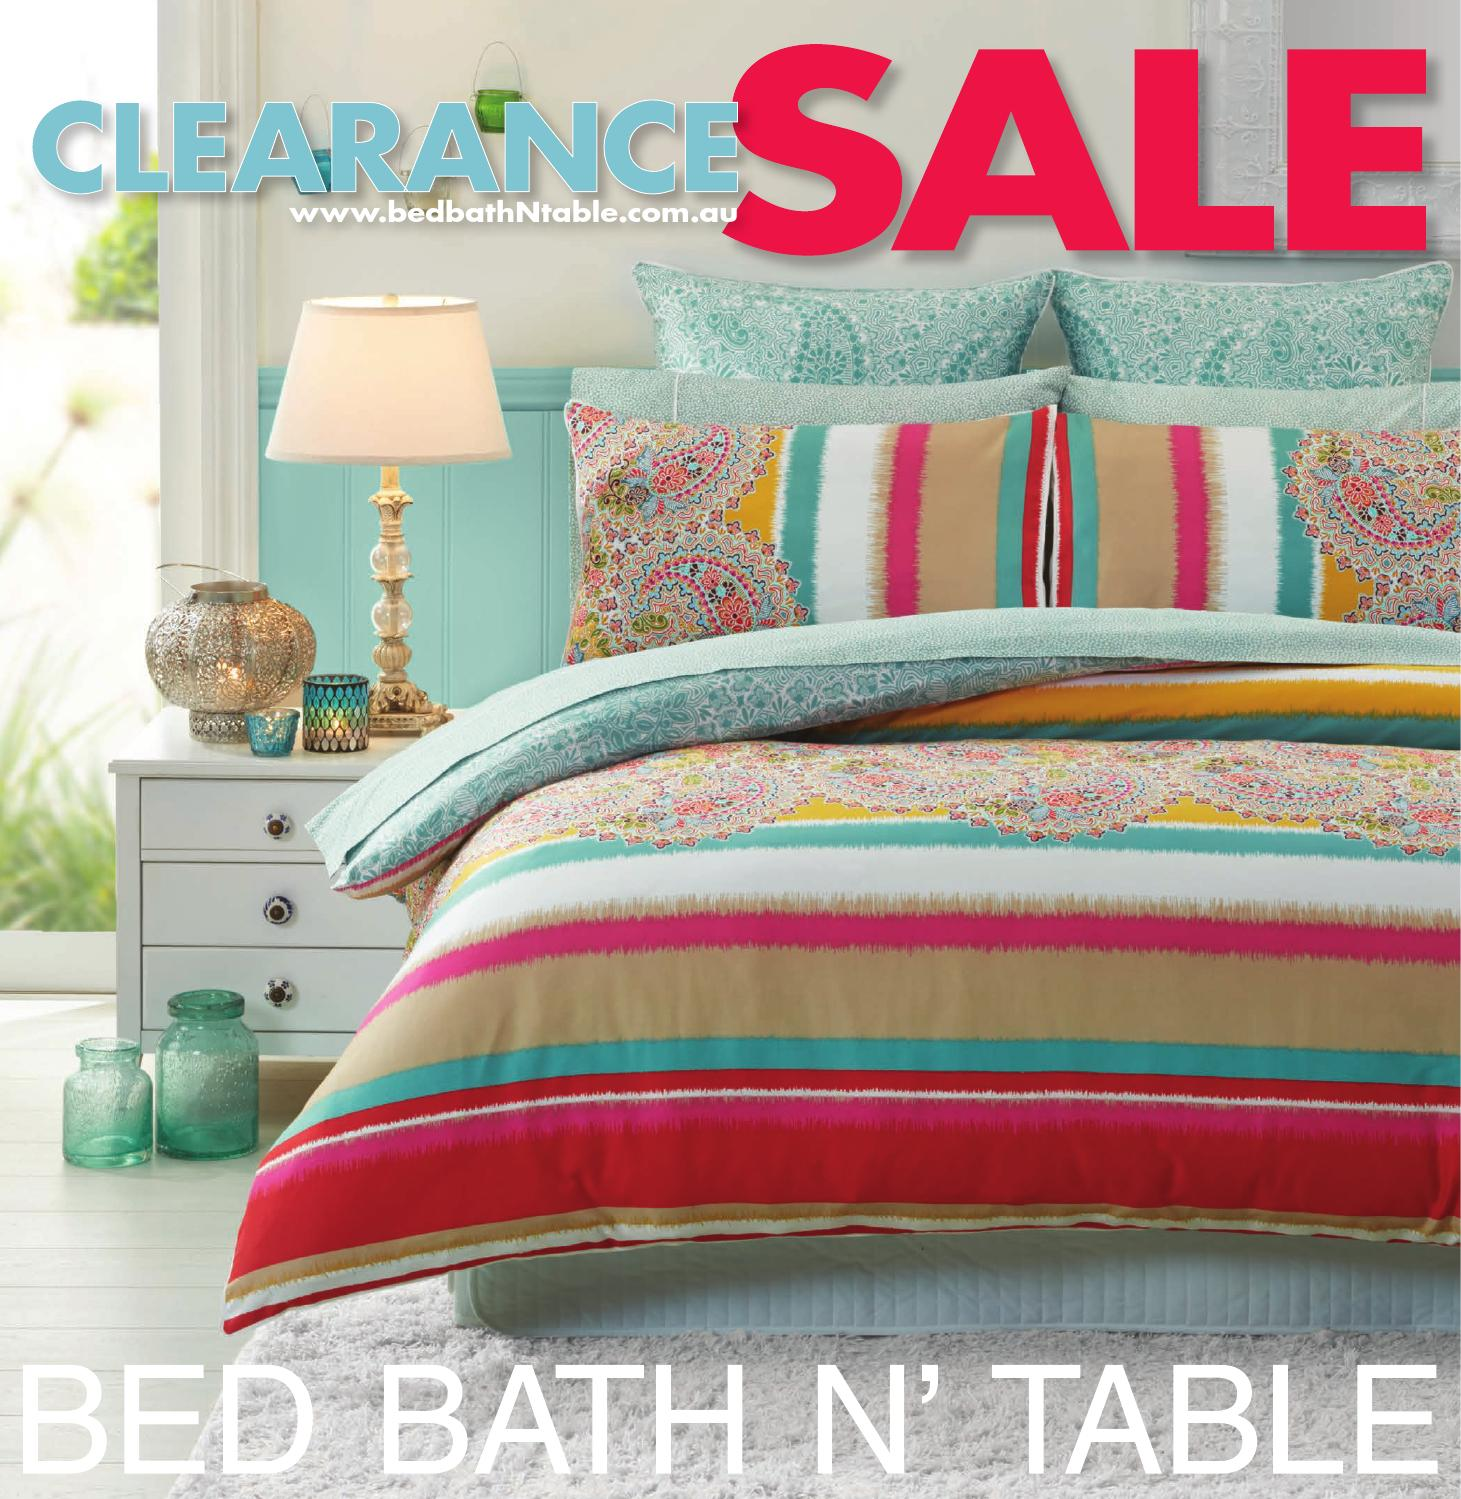 Bed Bath N Table Clearance Sale Catalogue by Bed Bath N Table